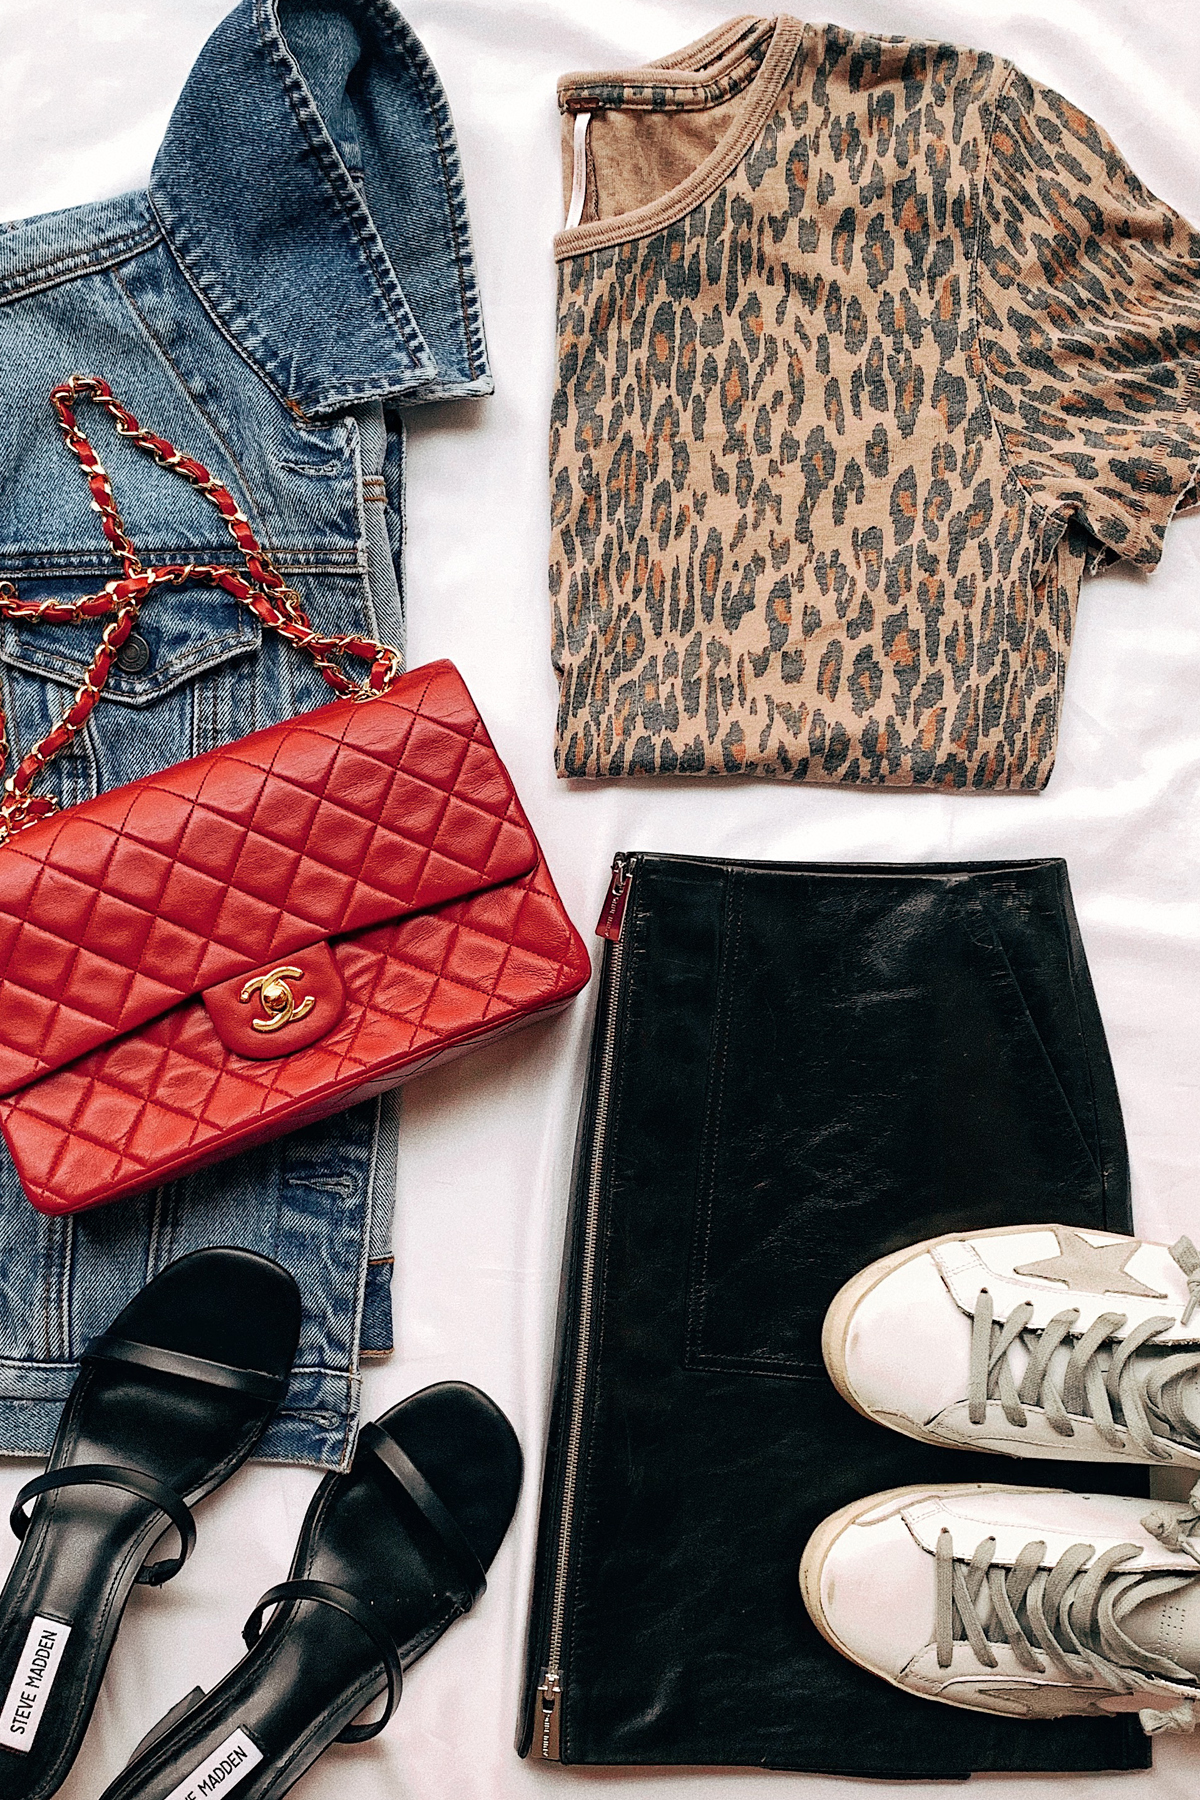 Denim Jacket Leopard Tshirt Black Leather Mini Skirt Red Chanel Handbag Golden Goose Sneakers Black Sandals